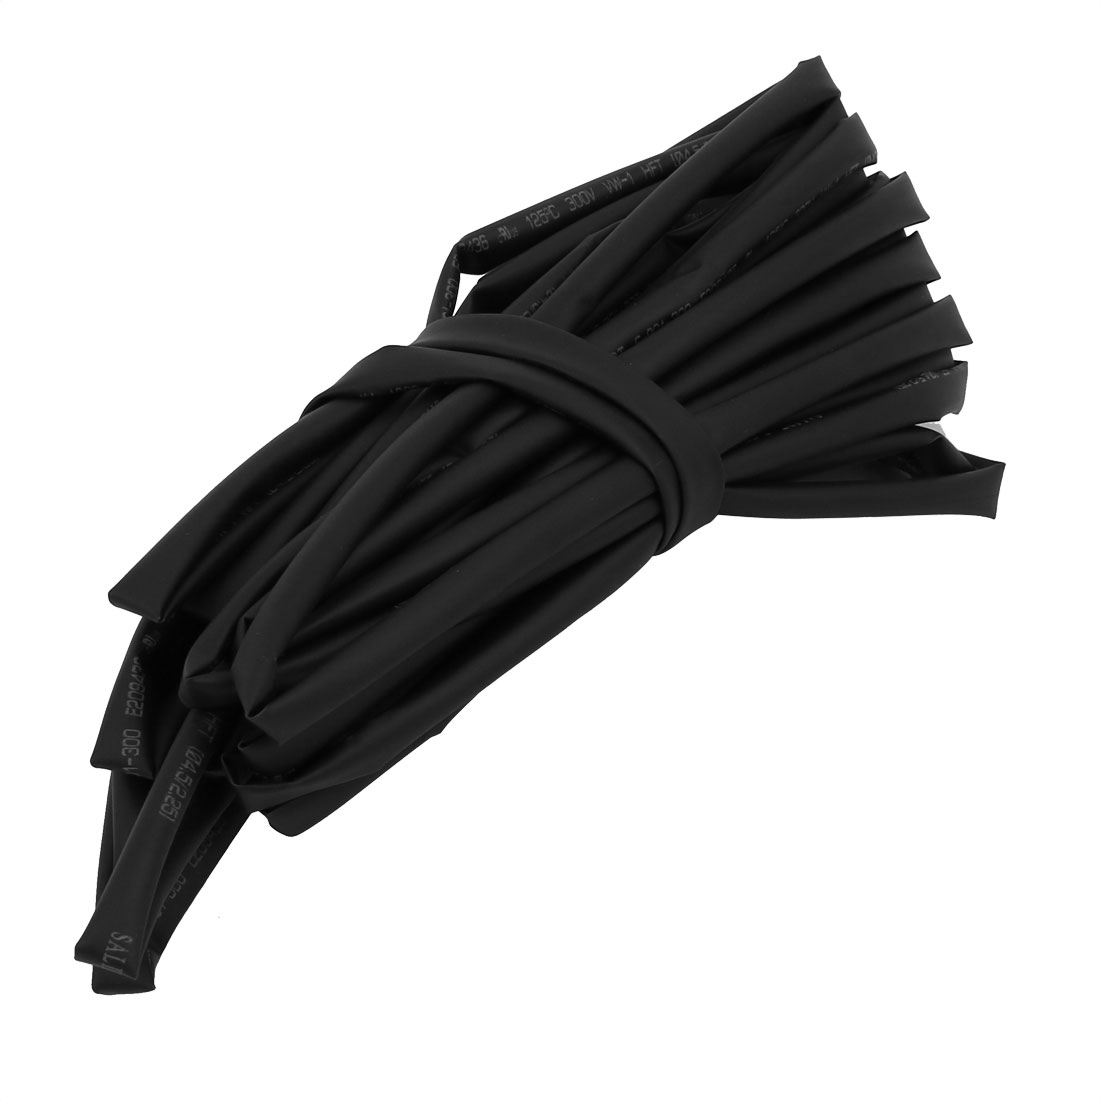 Heat Shrinkable Tube Wire Wrap Cable Sleeve 6 Meters Long 4.5mm Inner Dia Black